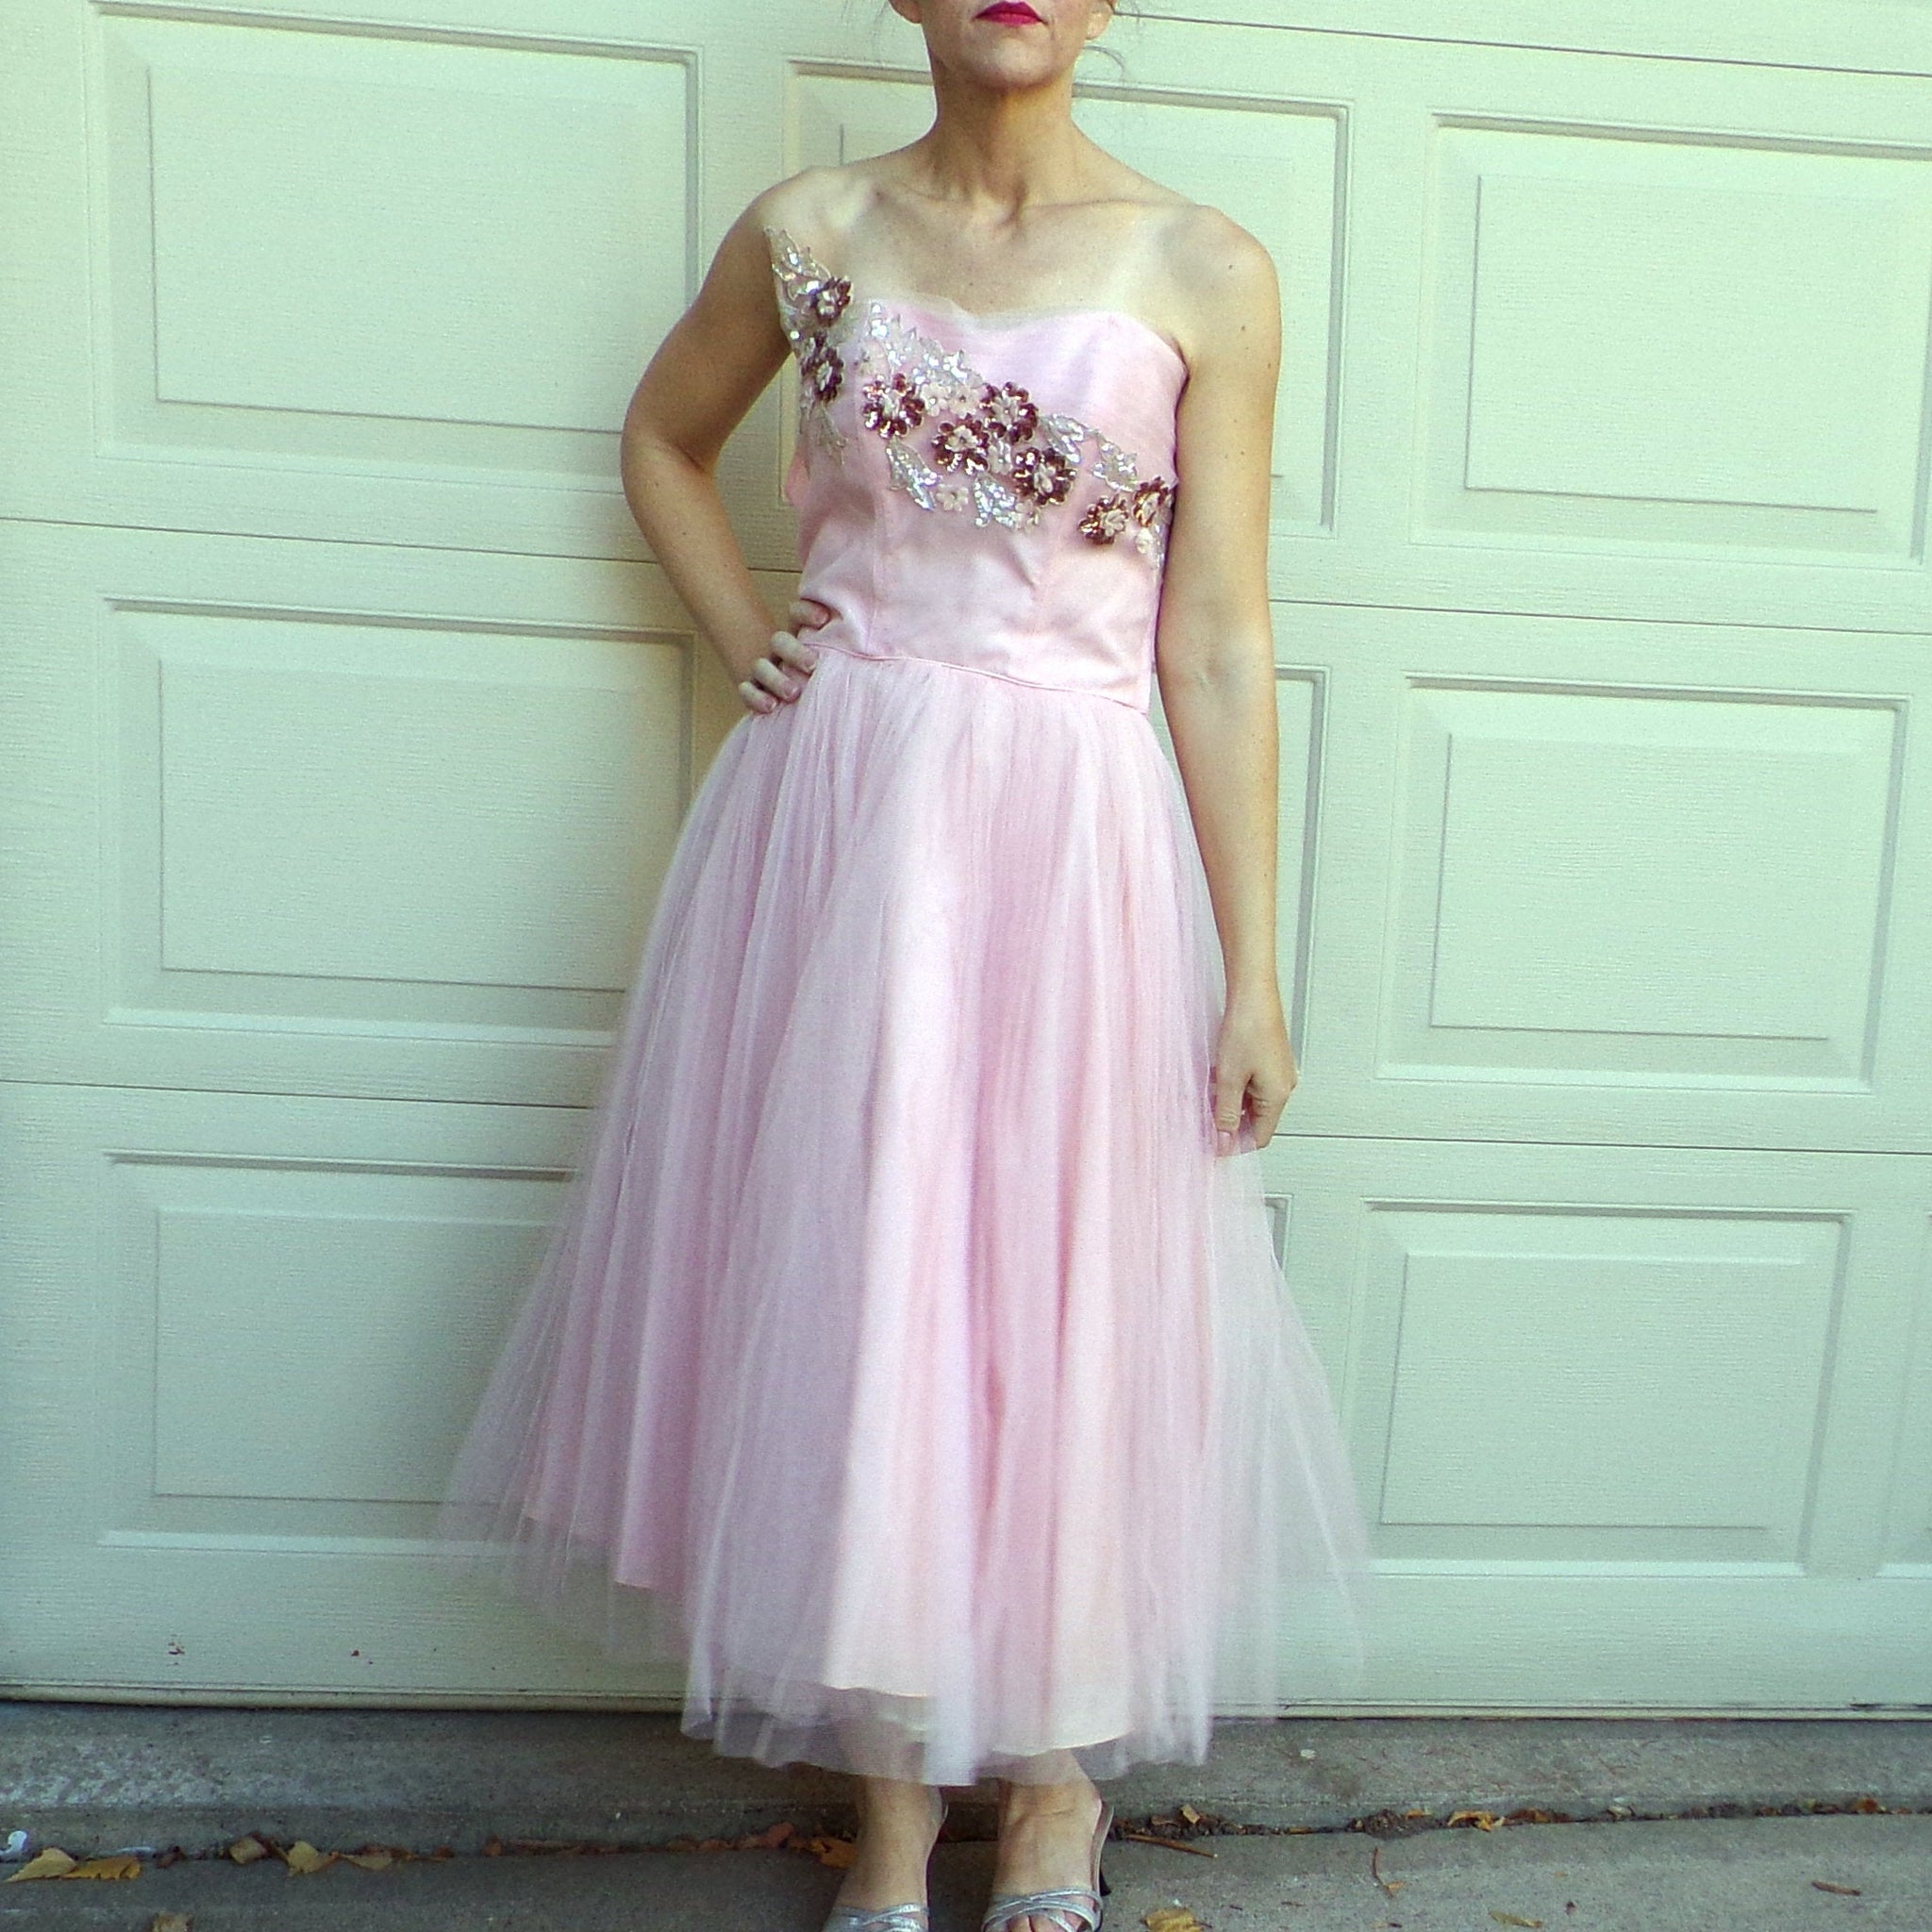 "fred perlberg PINK CUPCAKE DRESS 1950's 50's strapless party 29"" waist (E9)"